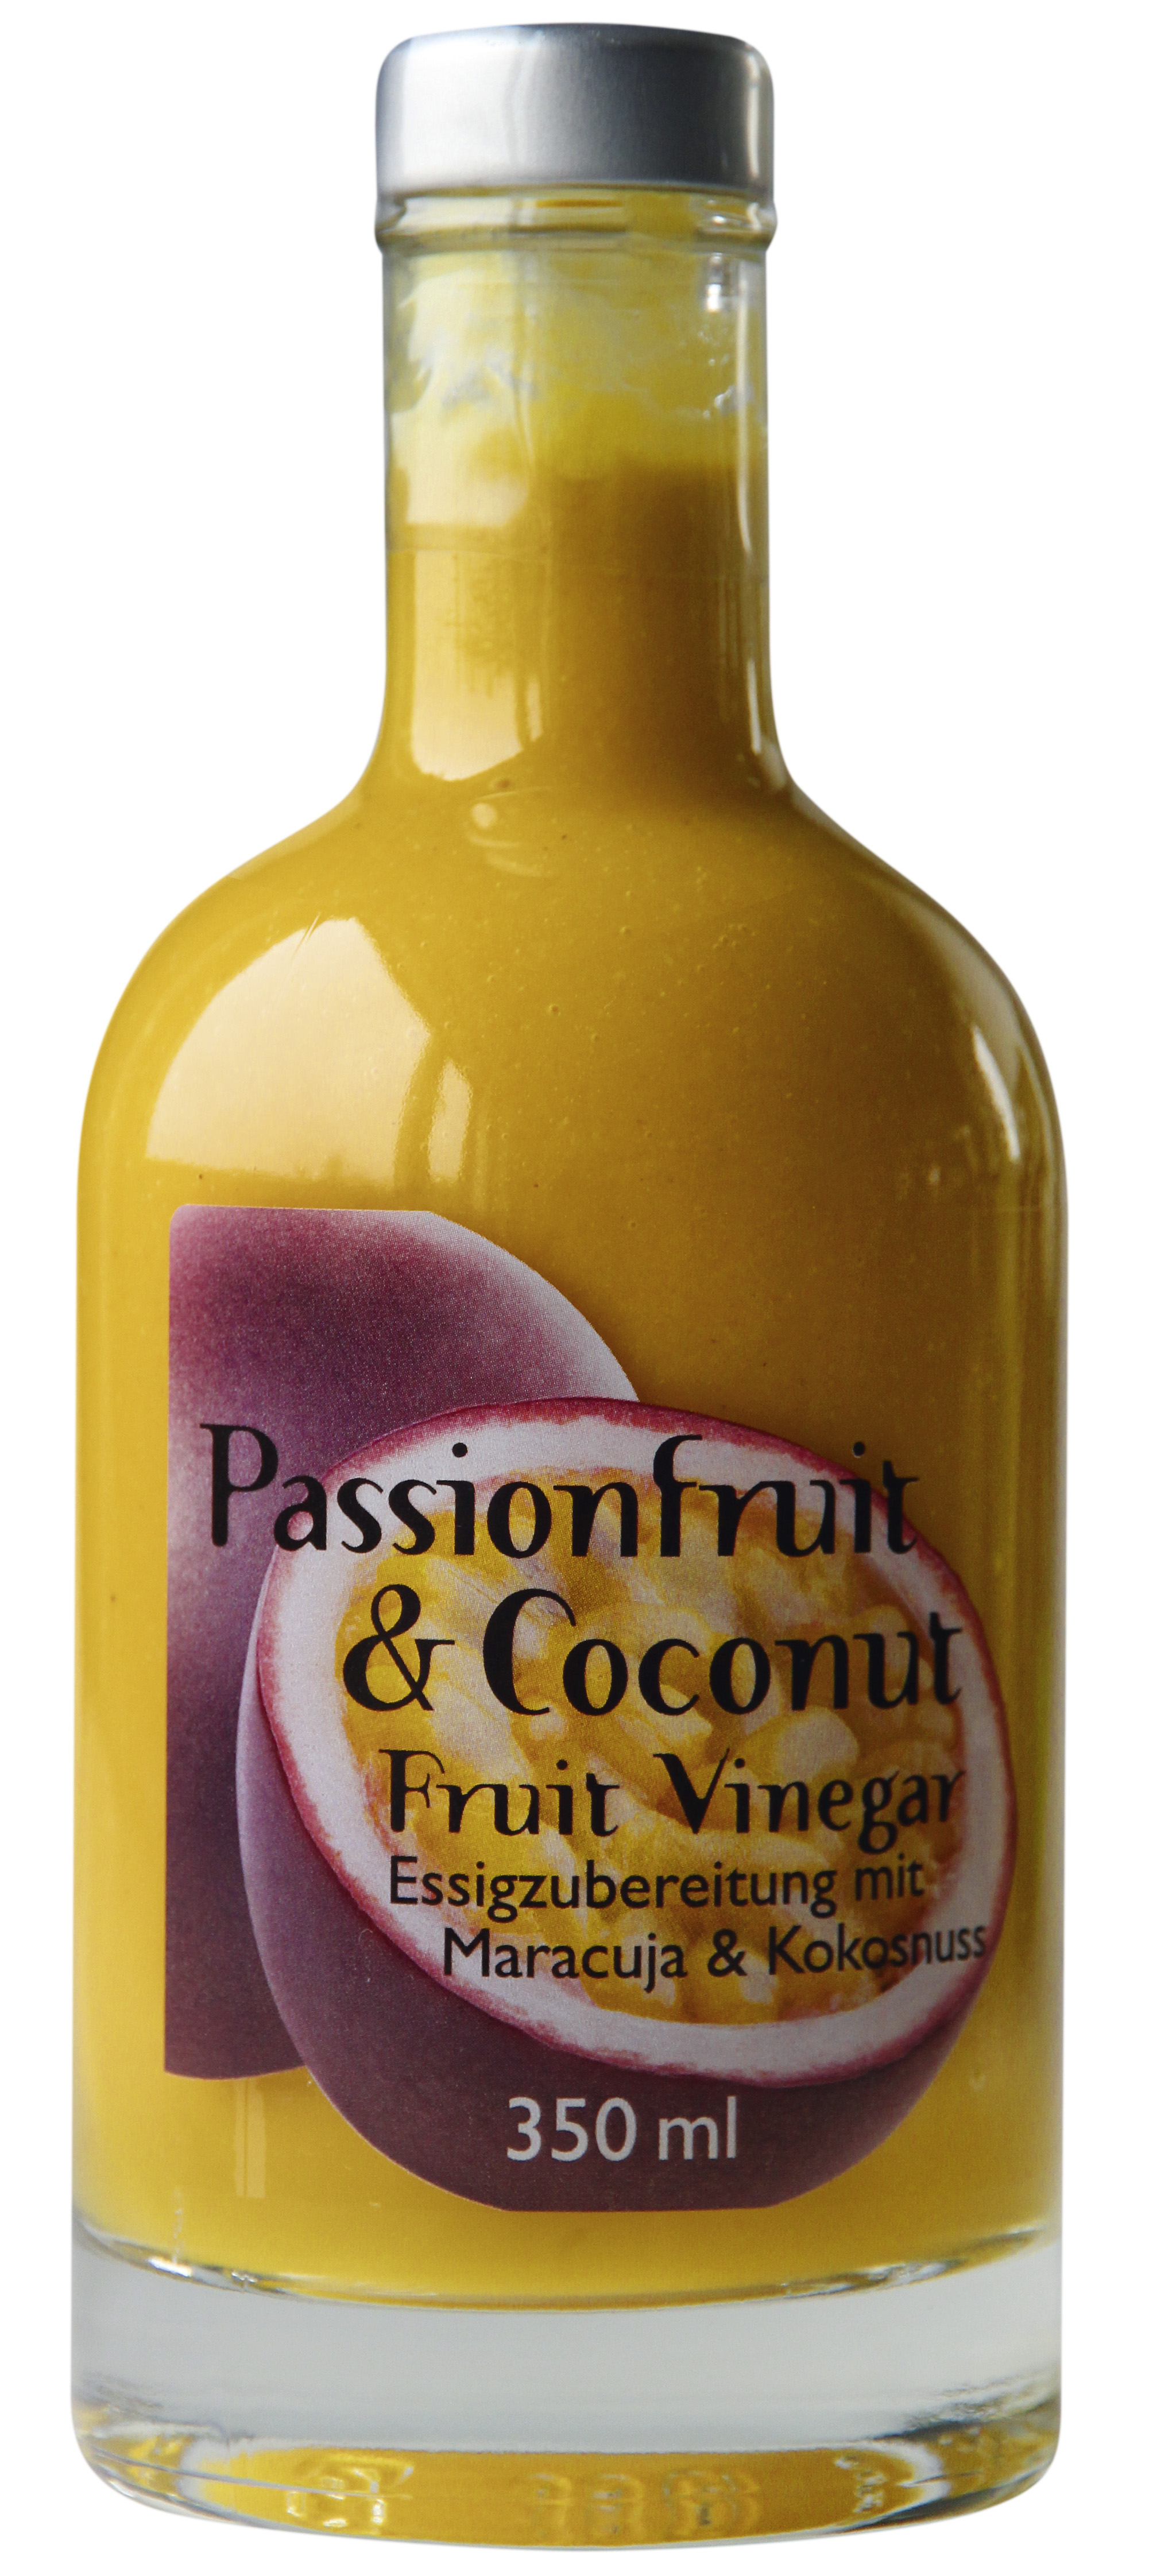 Passionfruit & Coconut Fruit Vinegar